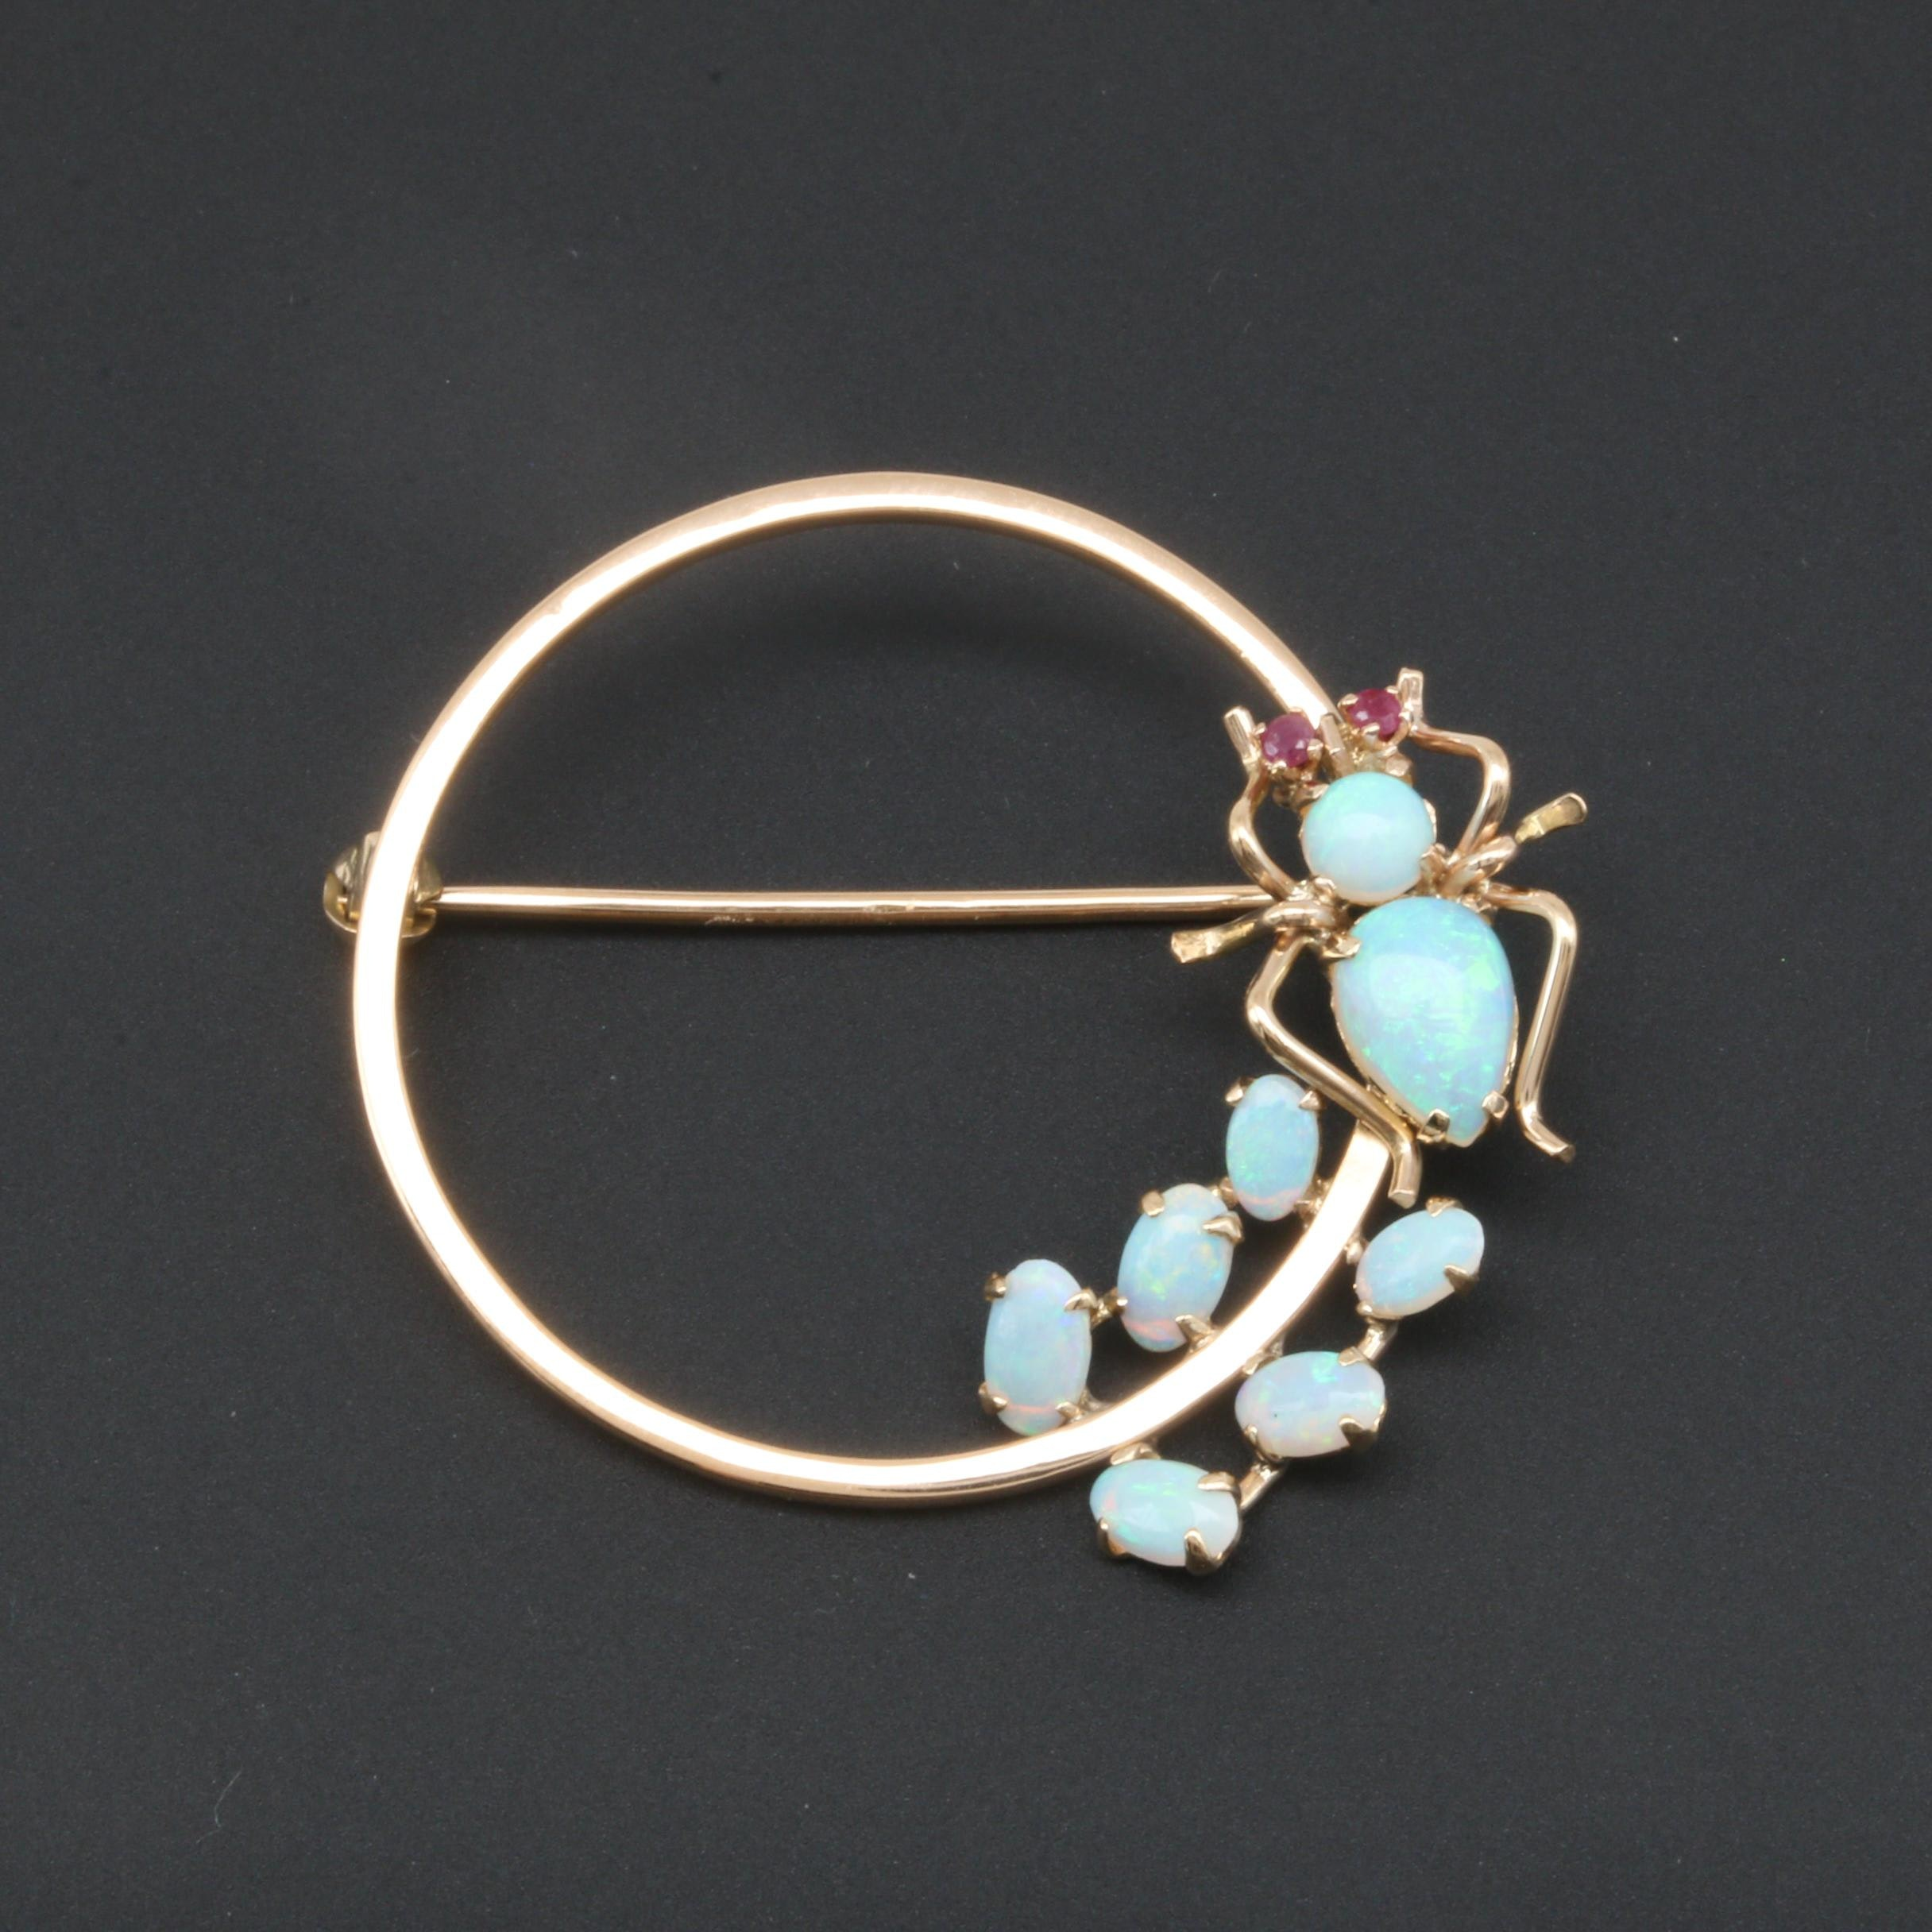 14K Yellow Gold Opal and Ruby Insect Brooch